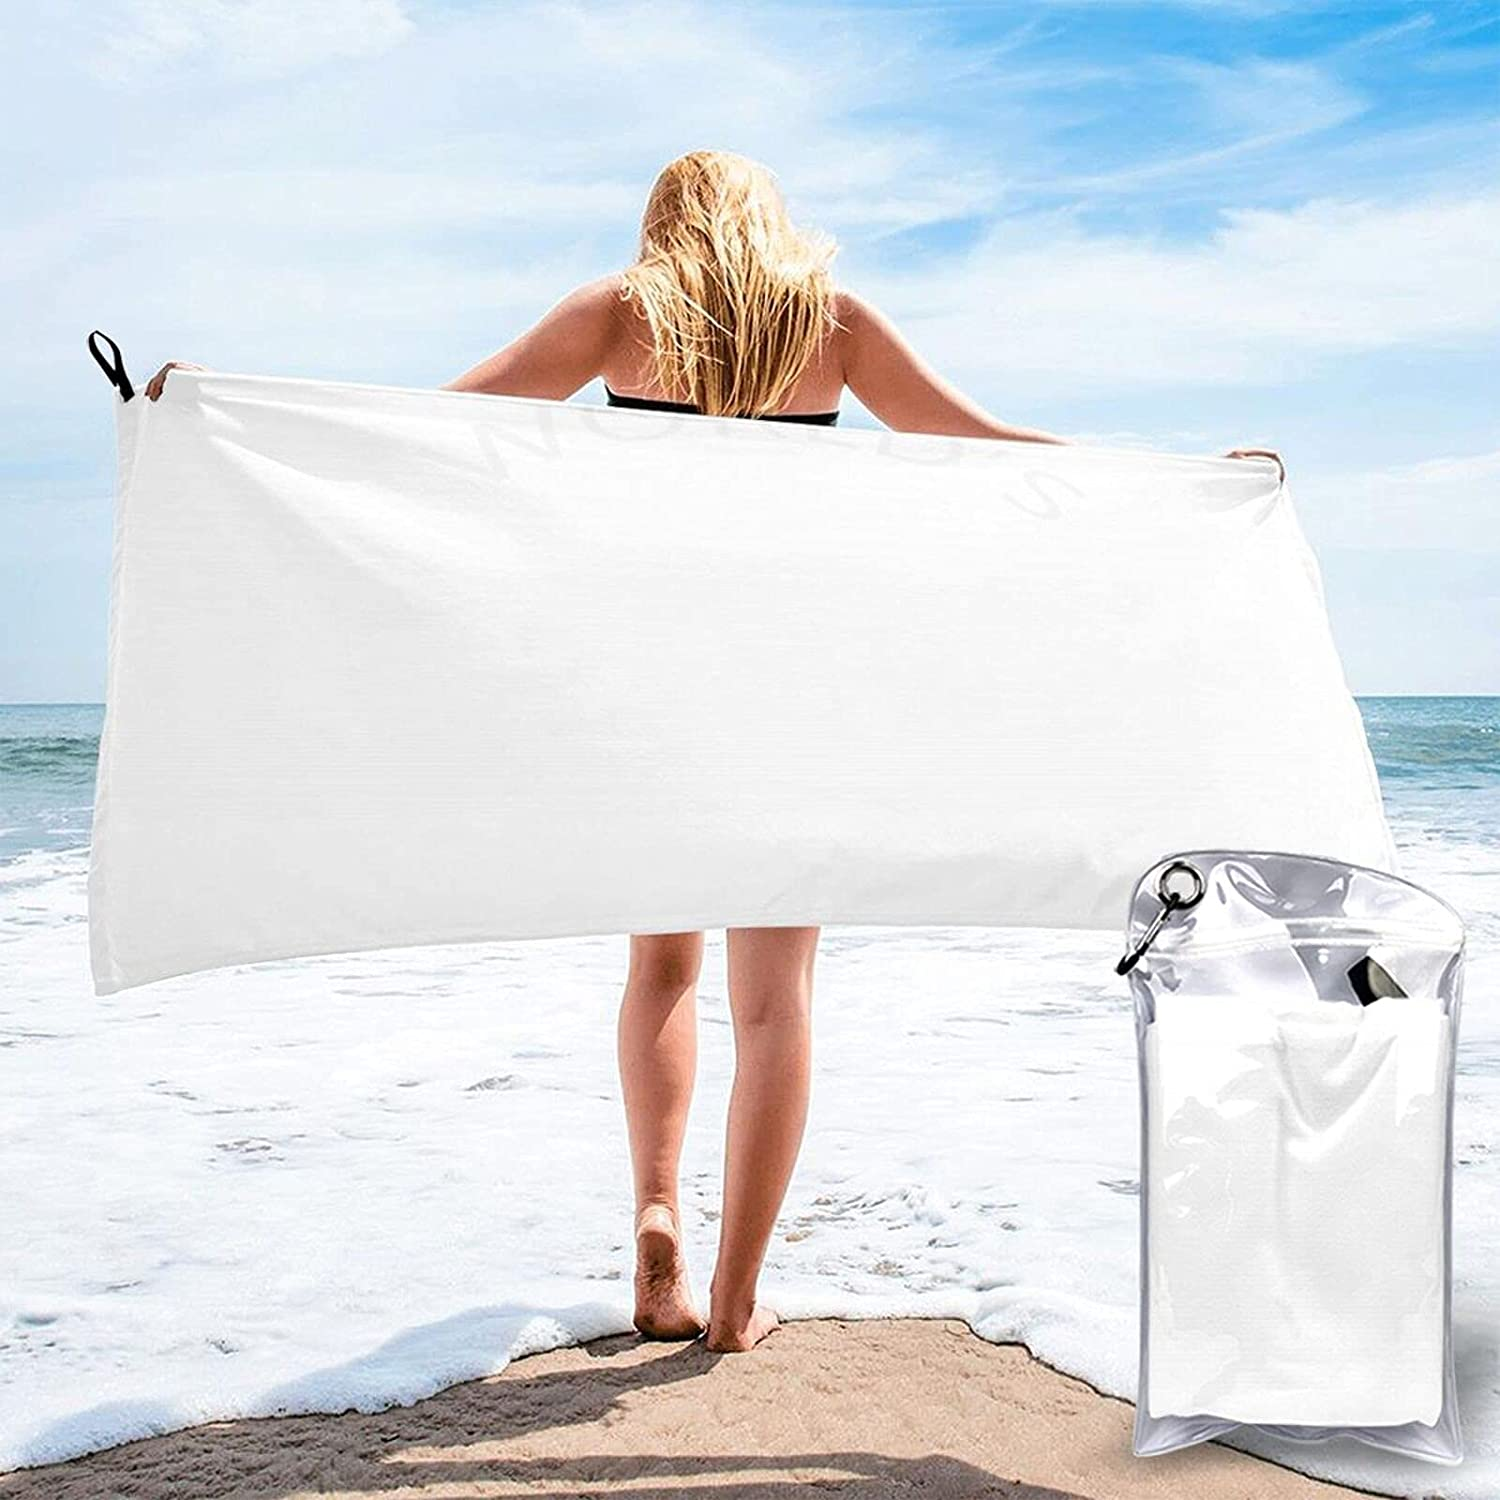 Best Mom Microfibre Pool Price reduction Beach Travel Towels Lightweig Max 42% OFF Quick Dry